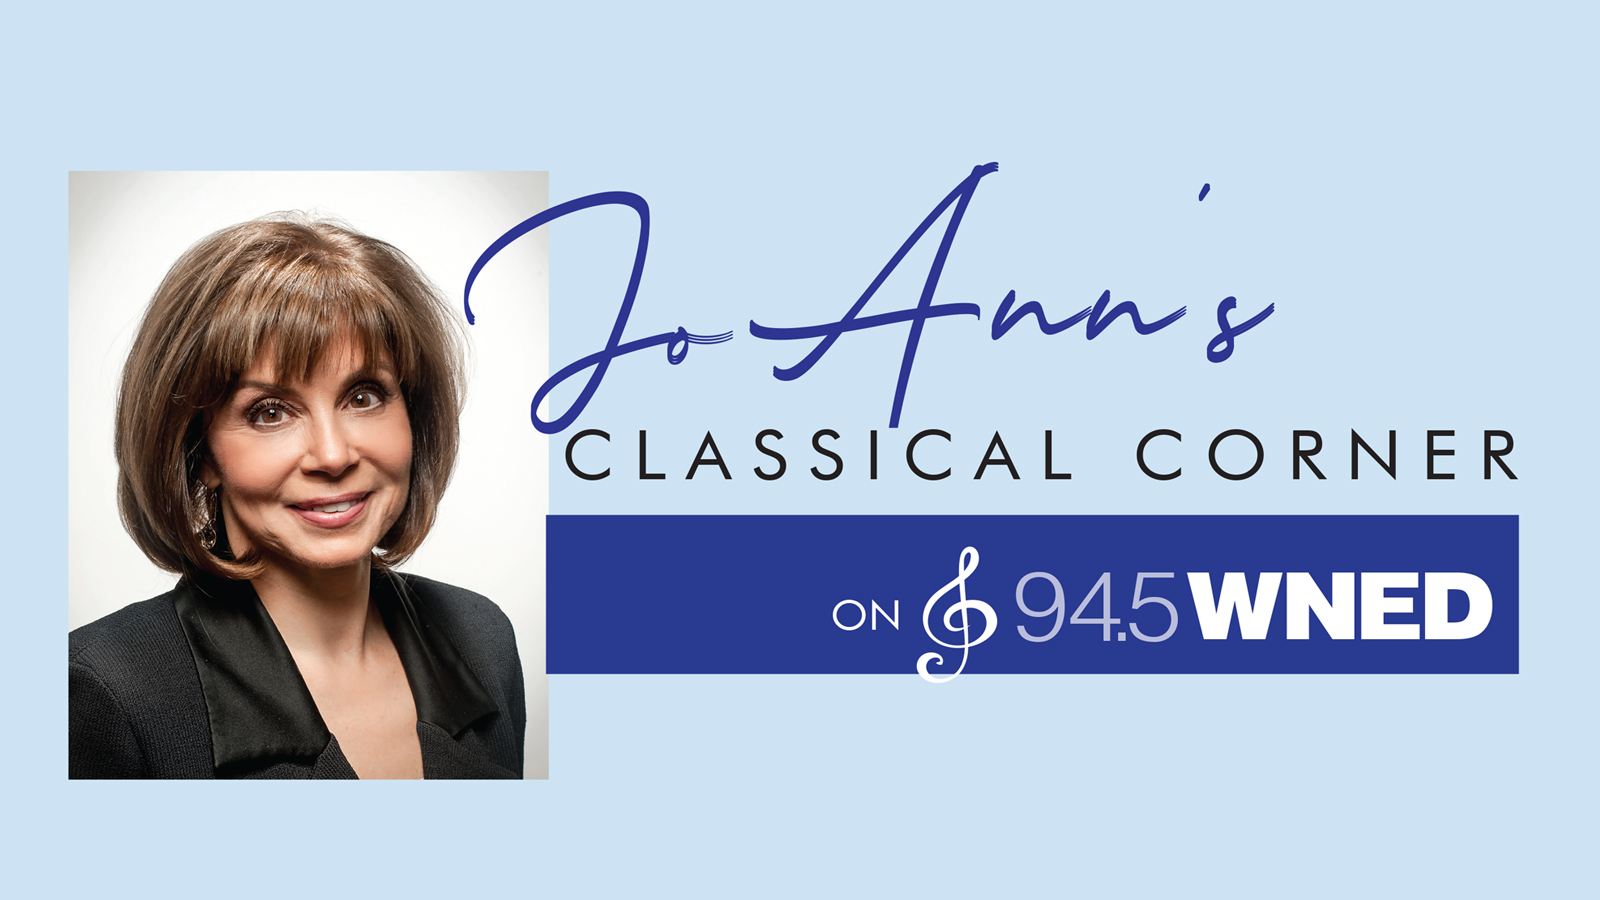 JoAnn's Classical Corner | Weekdays at 8:30am